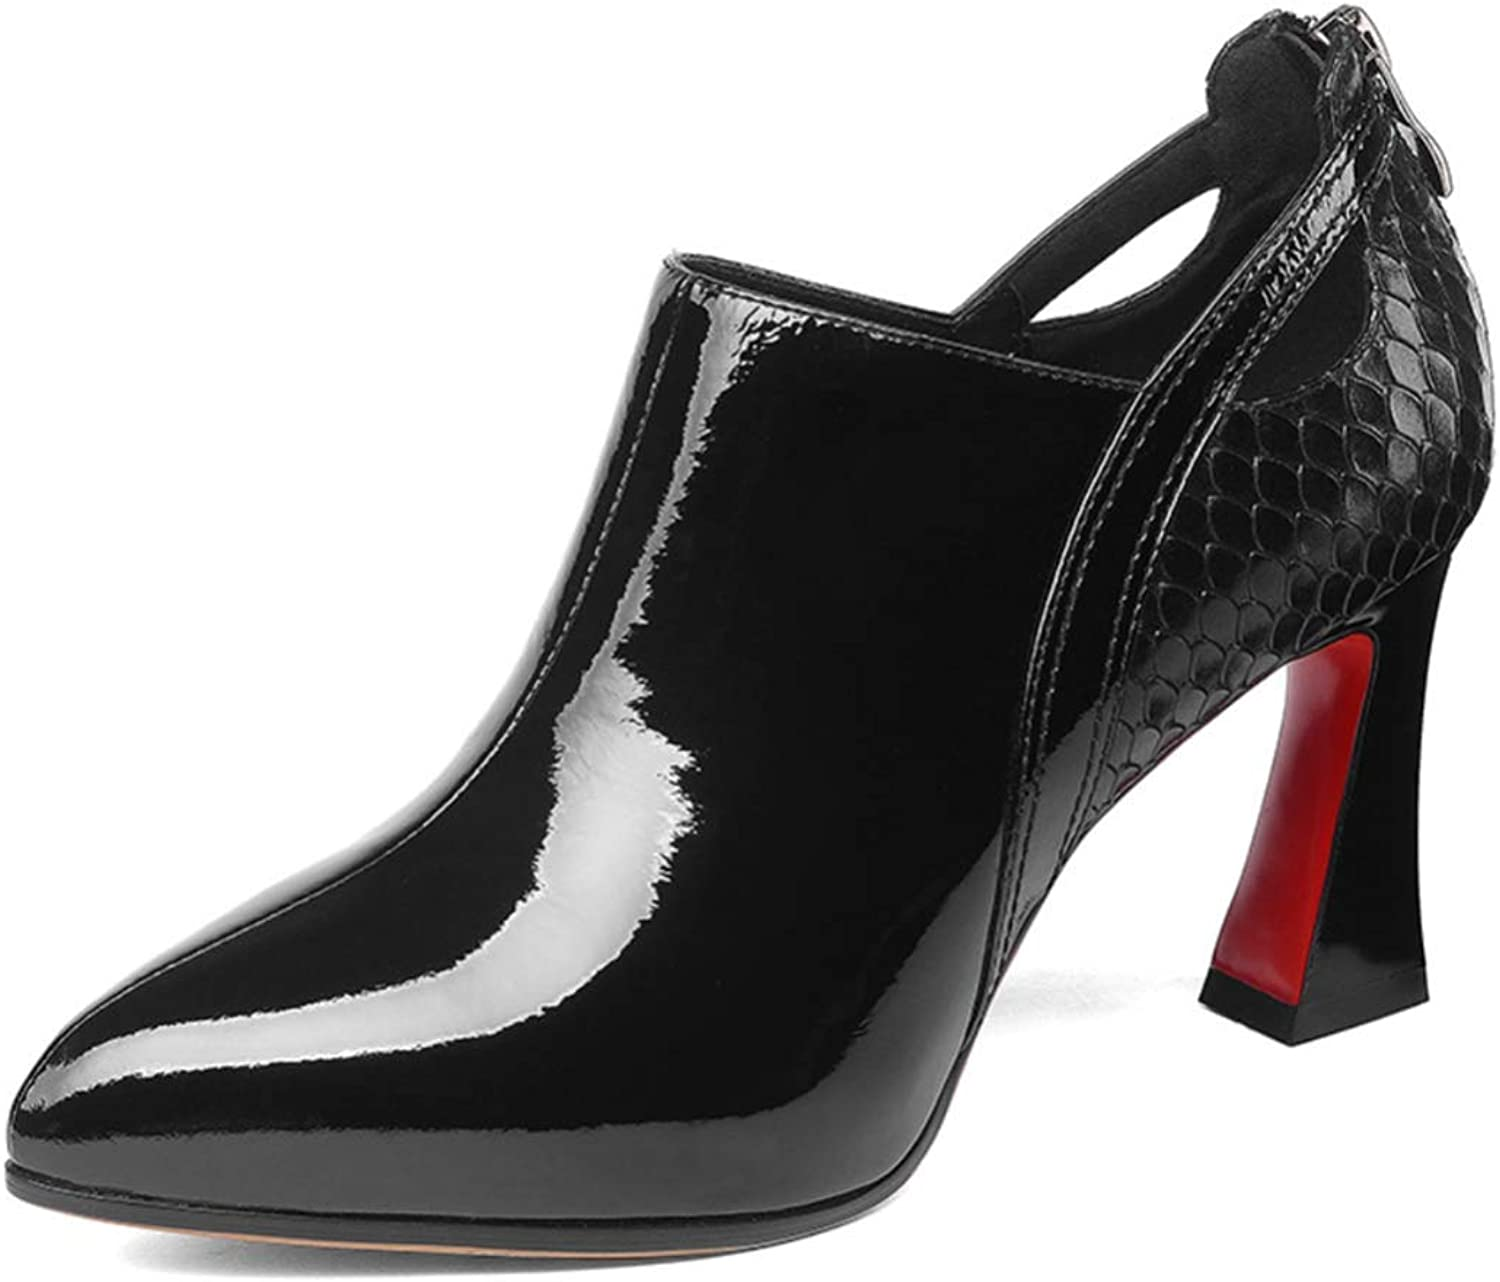 Shiney Wwomen's High-Heels Chunky Heel Single shoes Female Cow Patent Leather Pointed Zipper